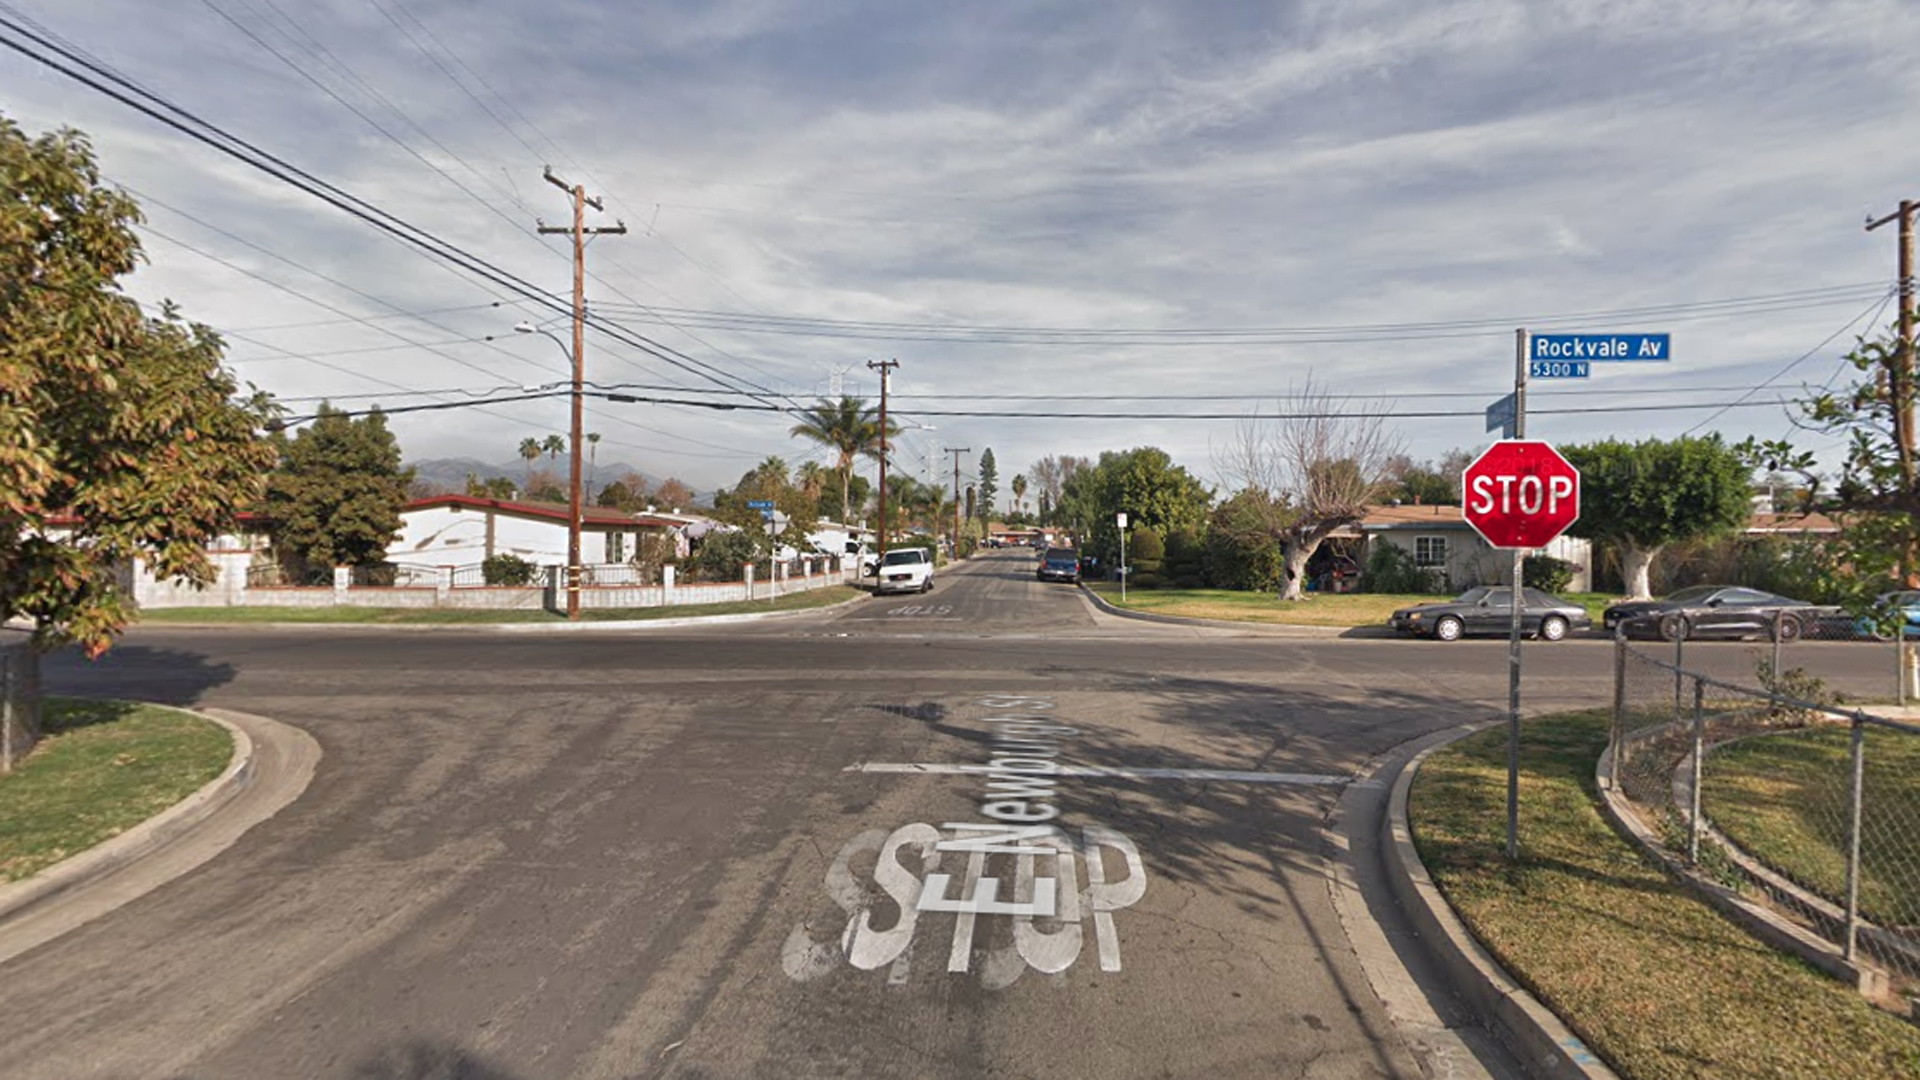 The intersection of Newburgh Street and Rockvale Avenue in an unincorporated county area near Azusa, as pictured in a Google Street View Image in February of 2018.